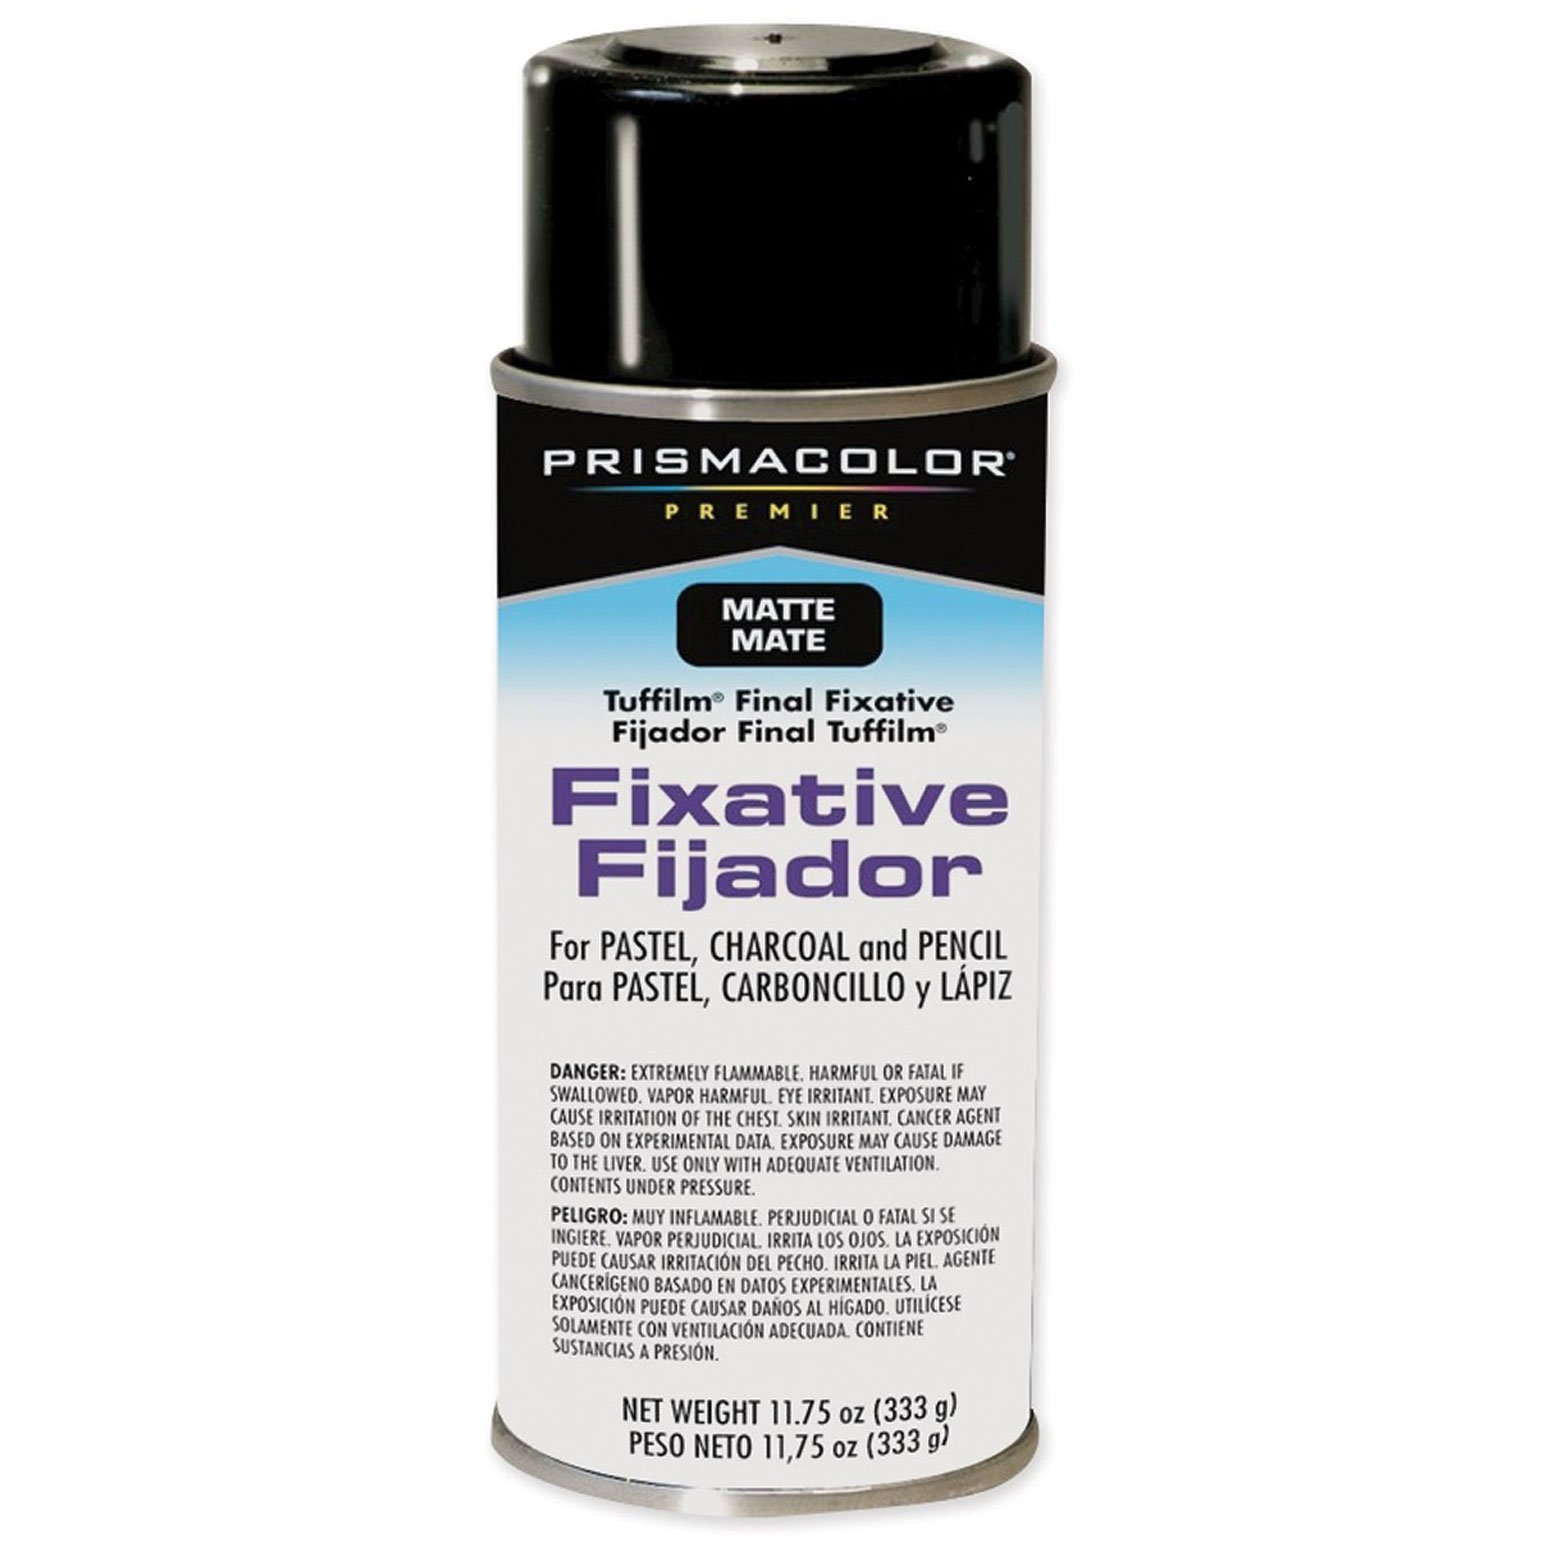 Prismacolor Premier Tuffilm Final Fixative Aerosol Spray-Matte 11.75oz